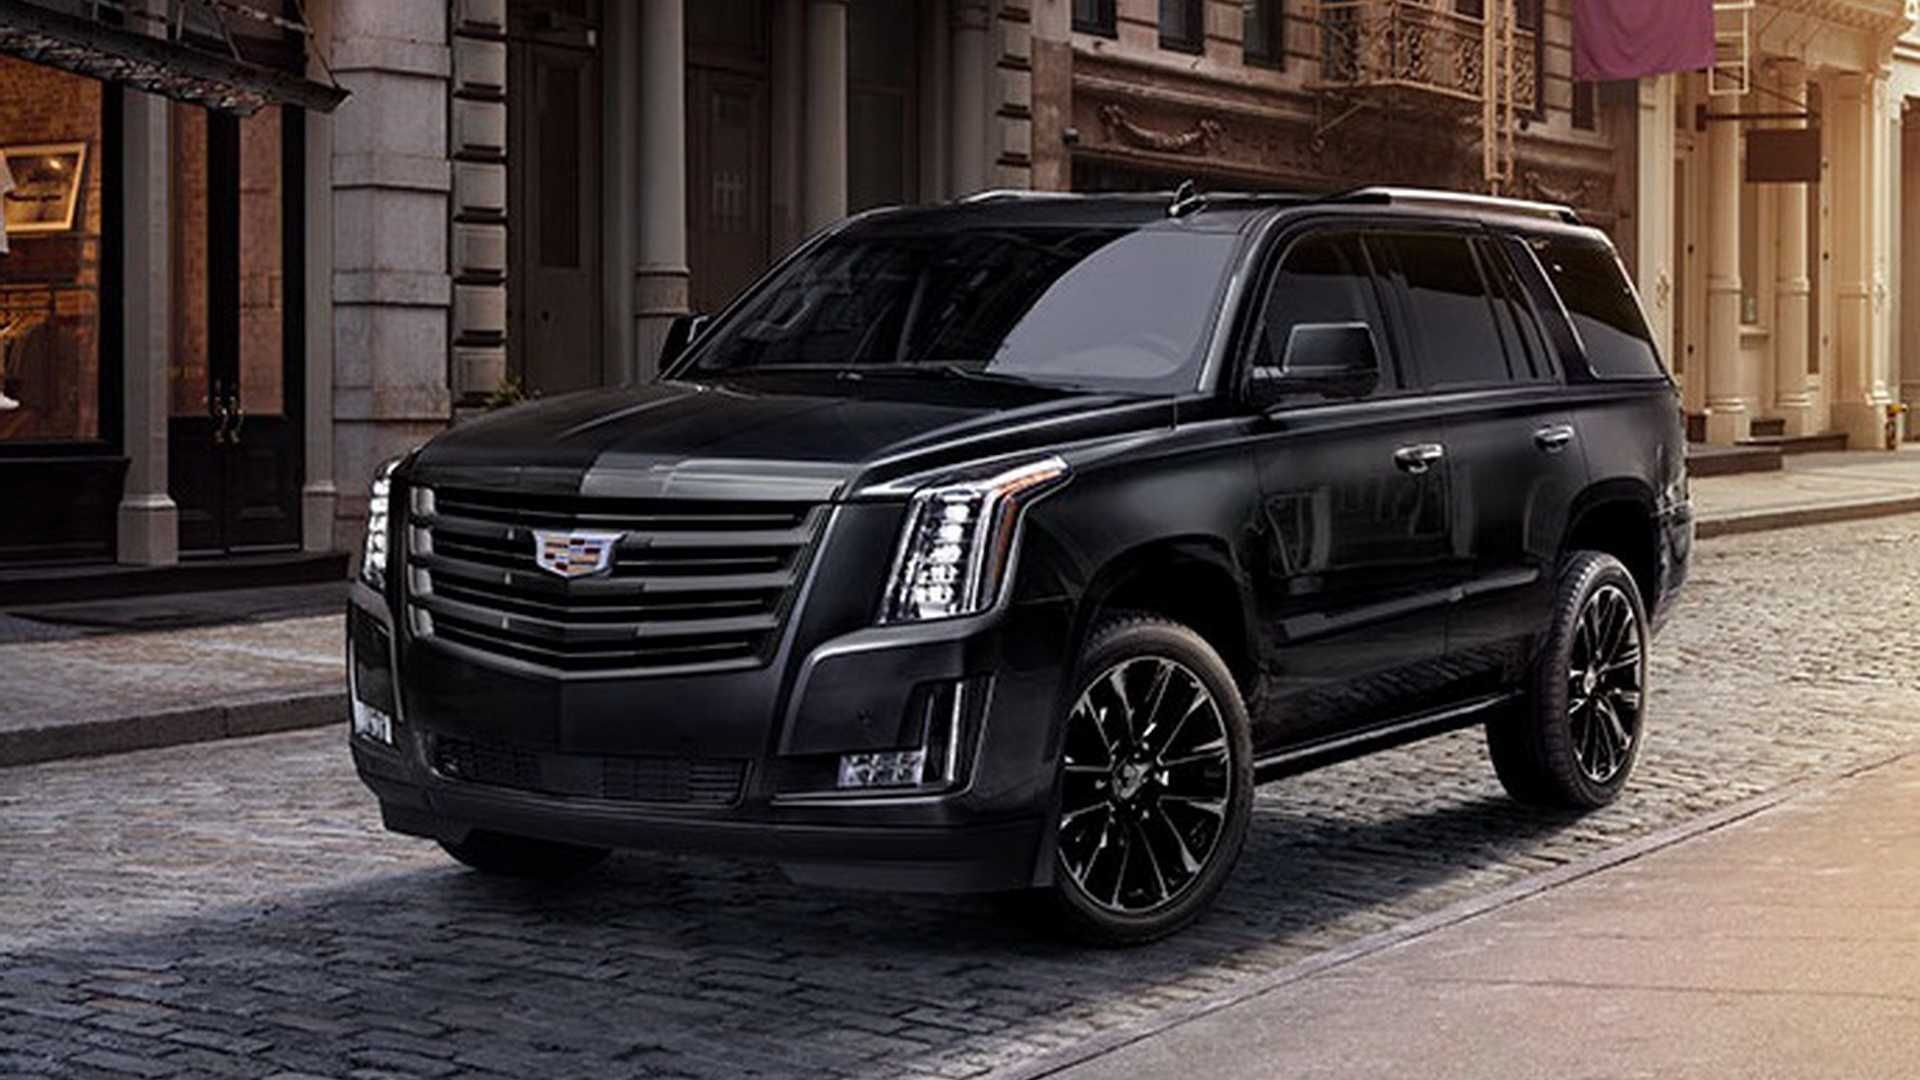 66 The Best 2020 Cadillac Escalade Vsport Configurations